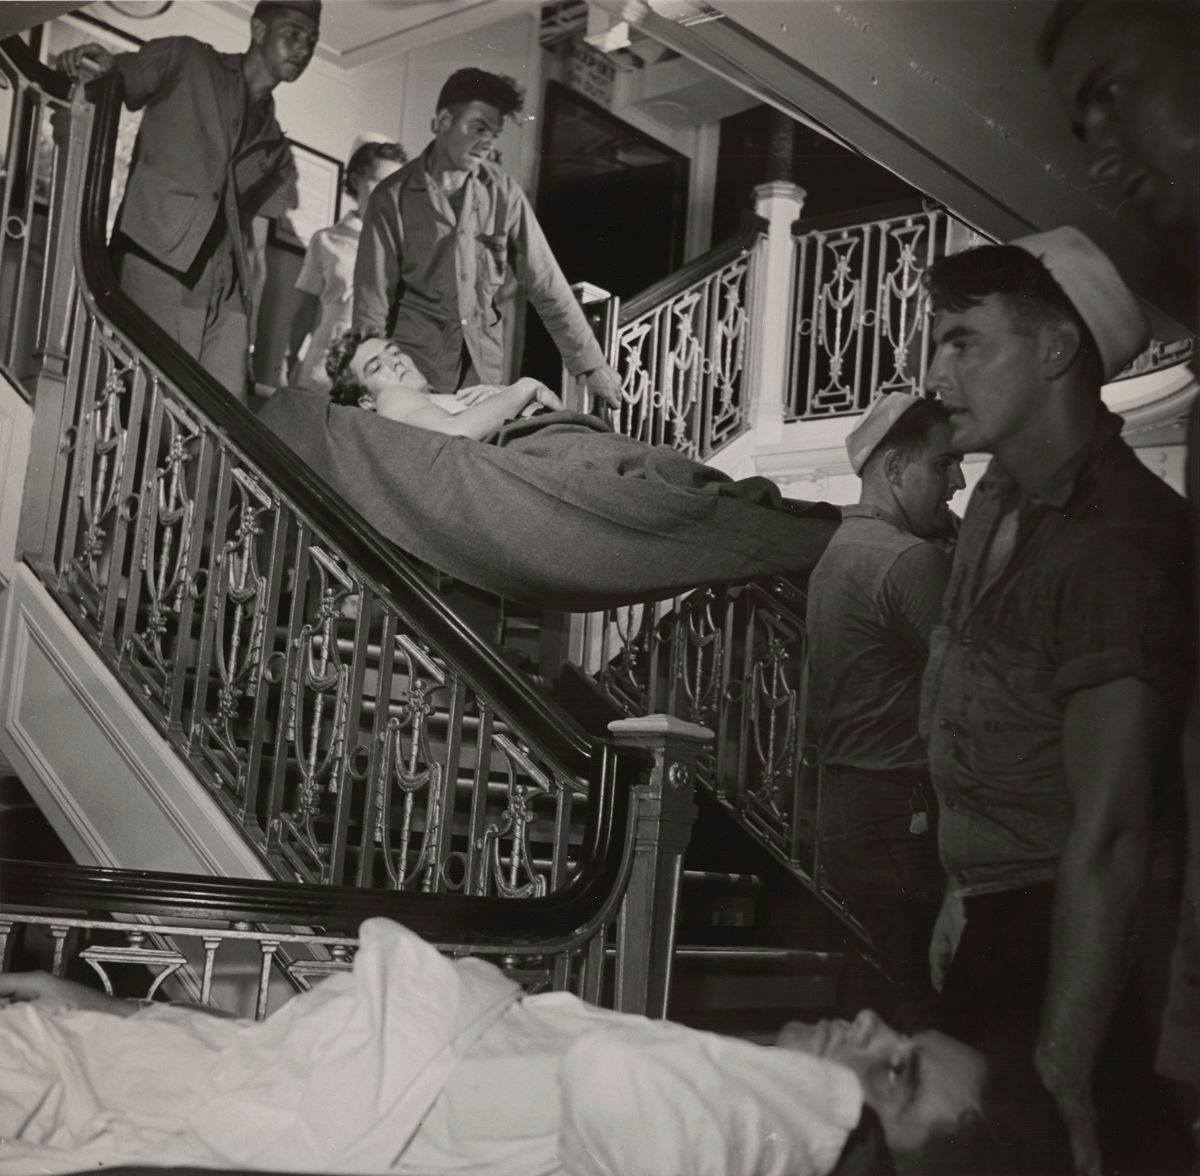 Black-and-white photos depicting quiet scenes of daily life on a hospital ship with sailors cared for by doctors, nurses, and corpsmen.